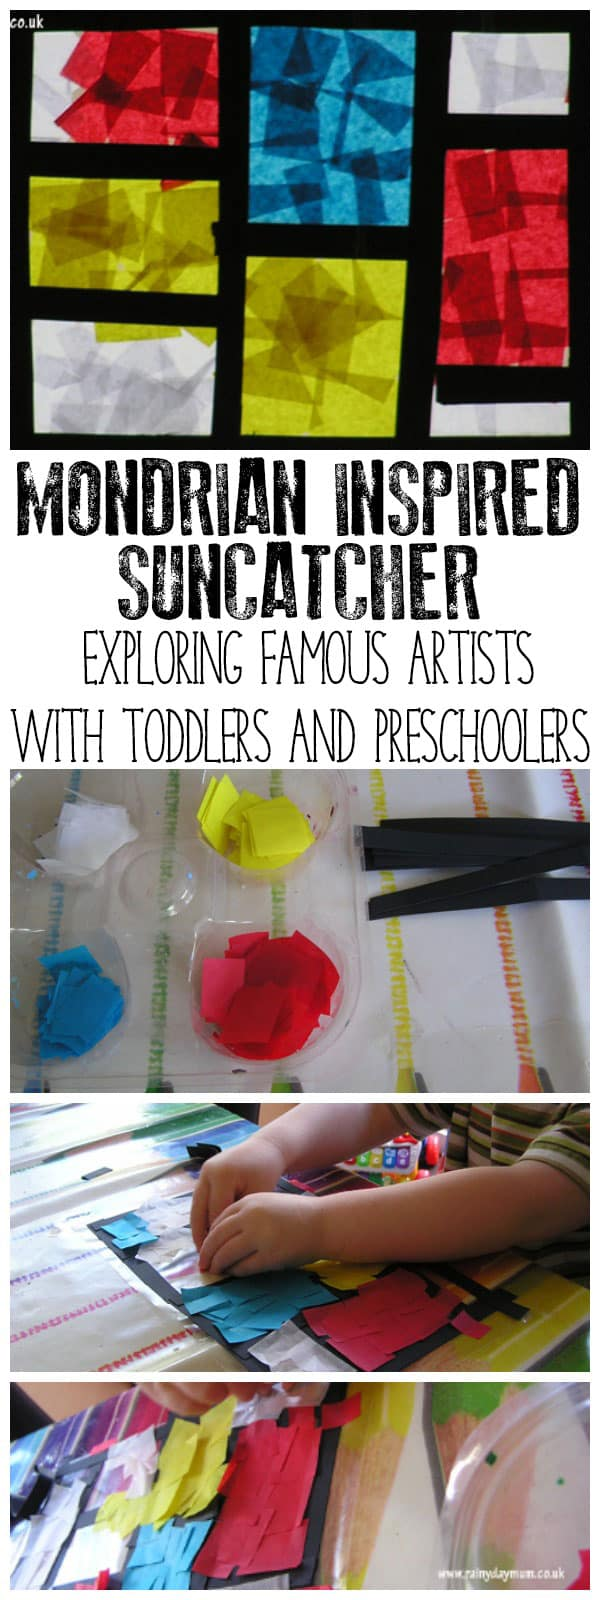 Explore the artist Mondrian with toddlers and preschoolers, recommended books aimed at this age group, plus a creative project inspired by his latest work